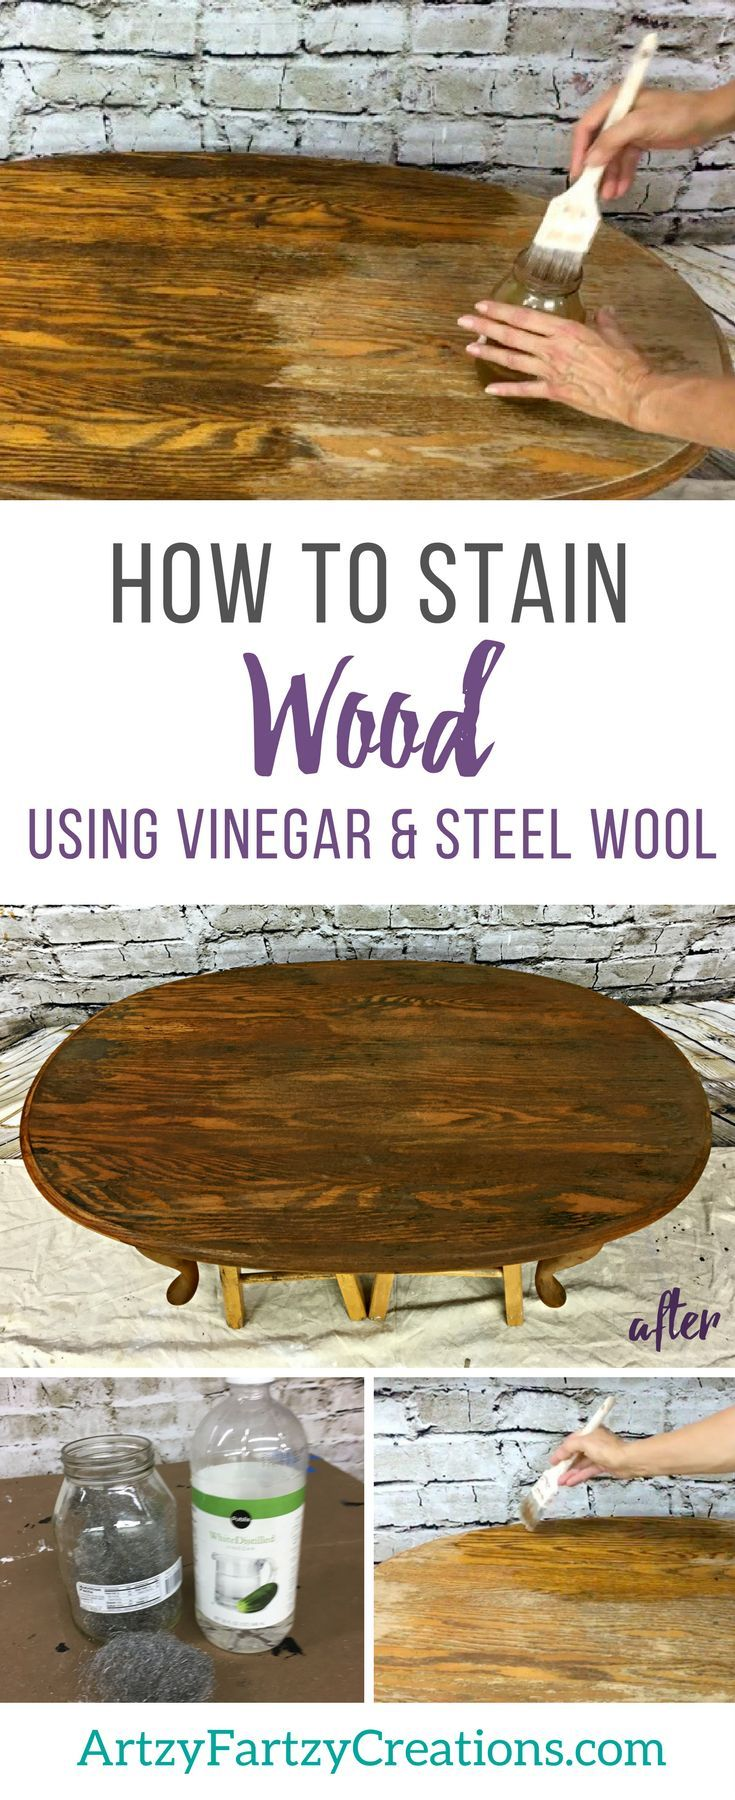 Ideas : How to Stain Wood using Vinegar - Wood Stain Furniture by Cheryl Phan | Furniture Painting Tips | Furniture Makeover